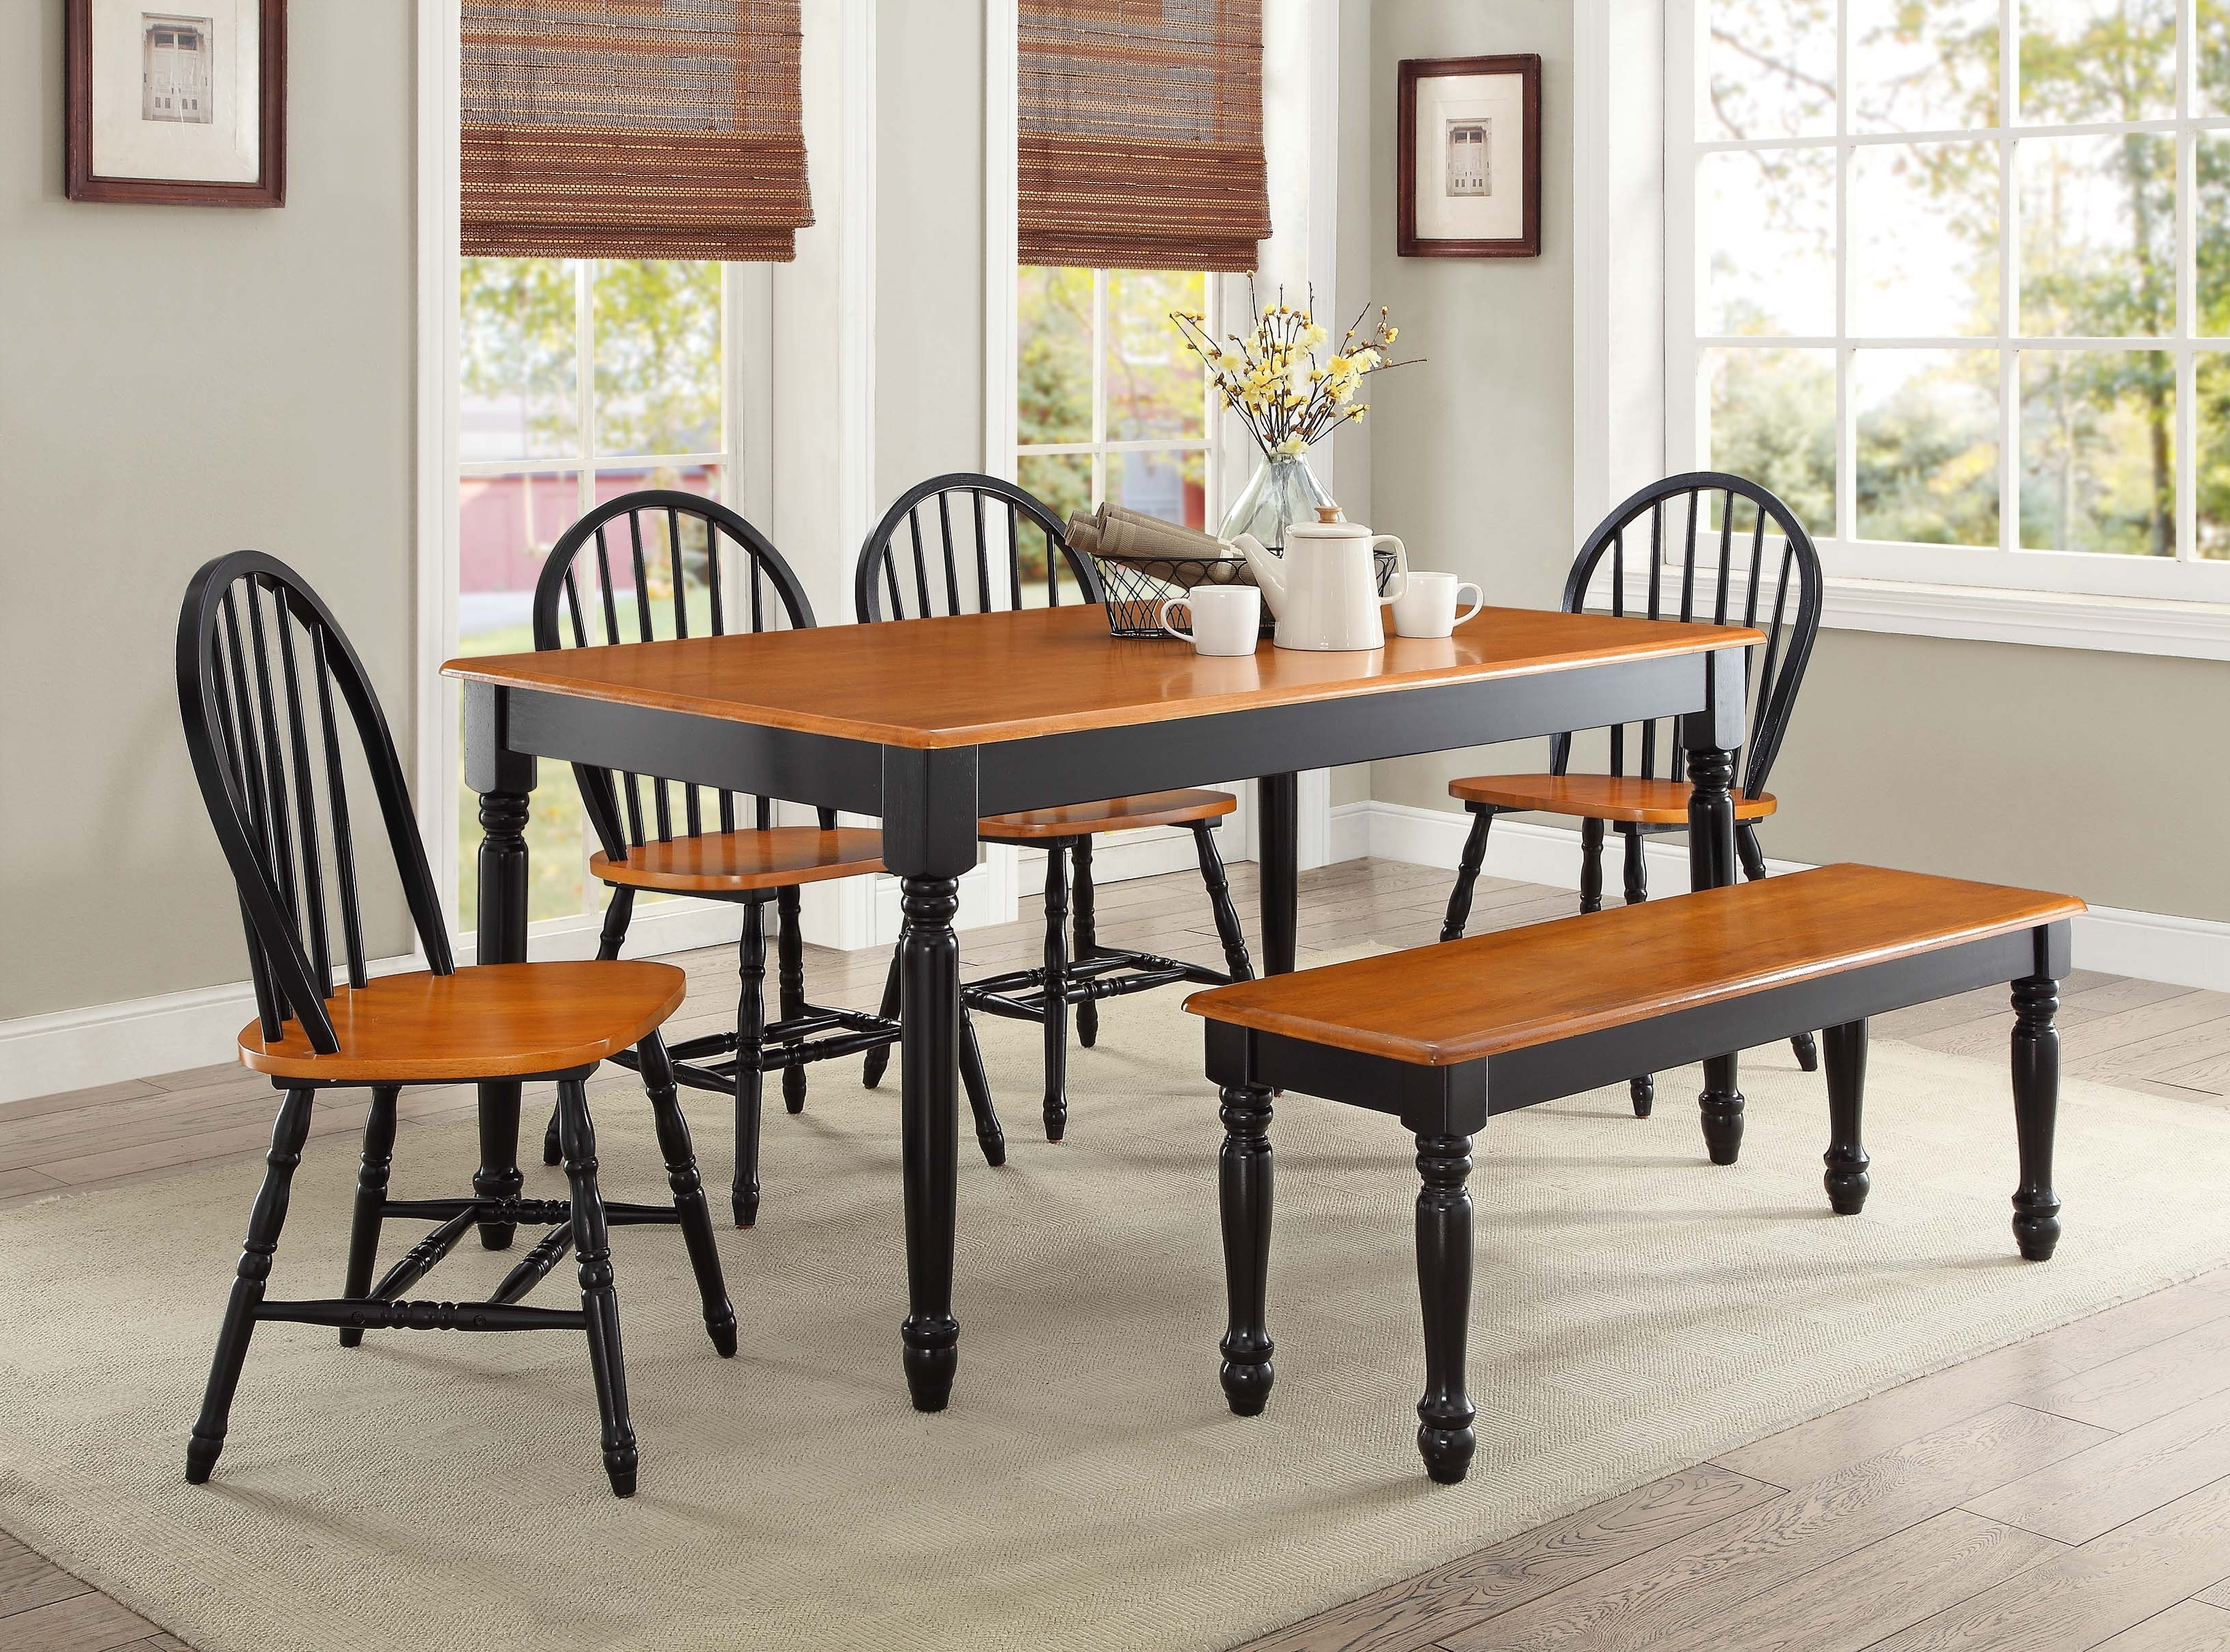 Craftsman 9 Piece Extension Dining Sets Pertaining To Preferred Dining Room Sets At Big Lots — Bluehawkboosters Home Design (View 19 of 25)